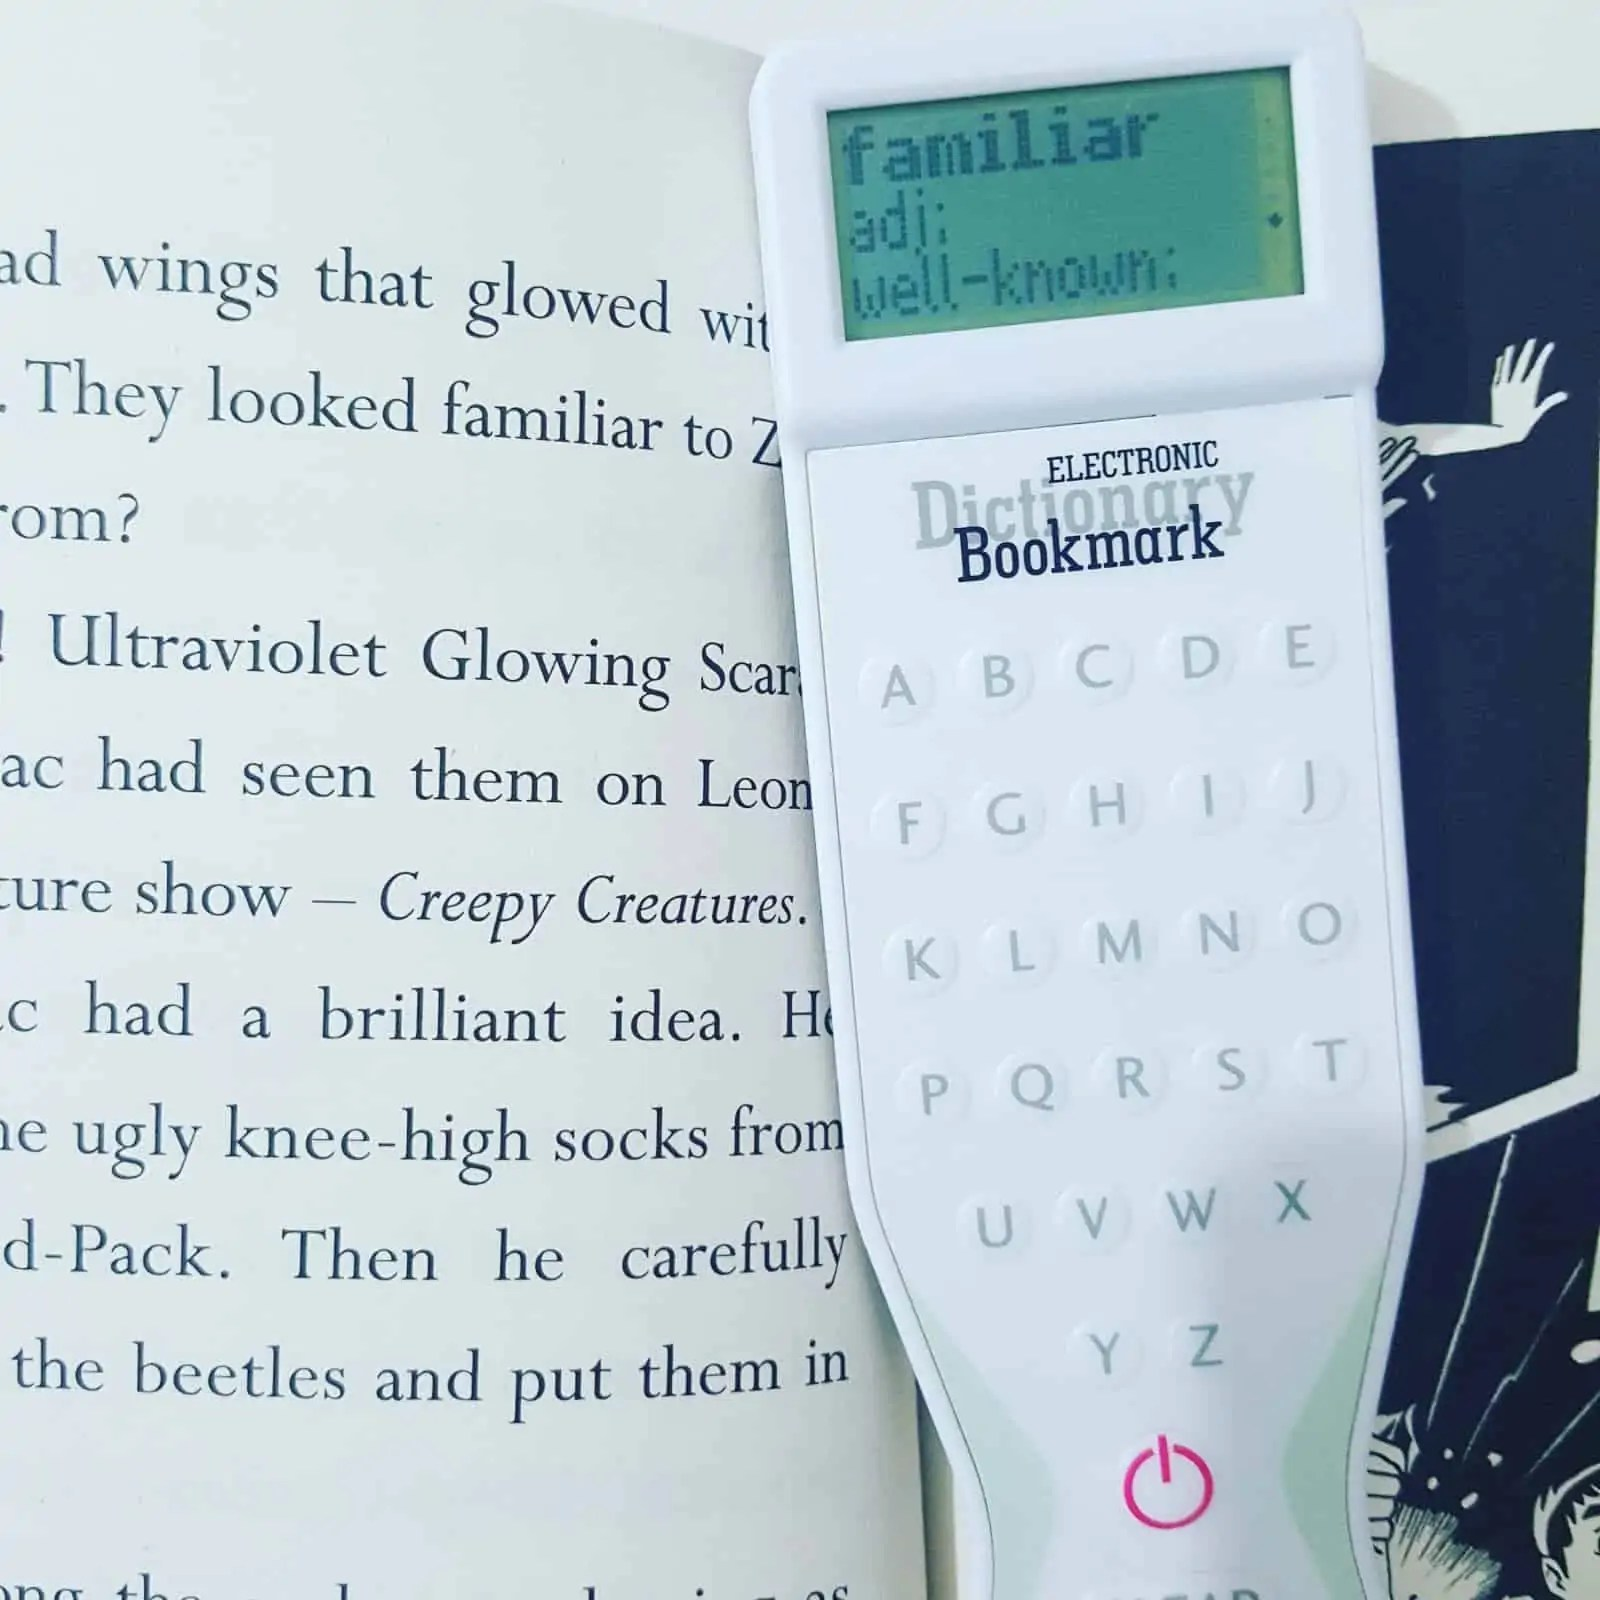 IF Electronic Dictionary Bookmark a great gift for all readers.